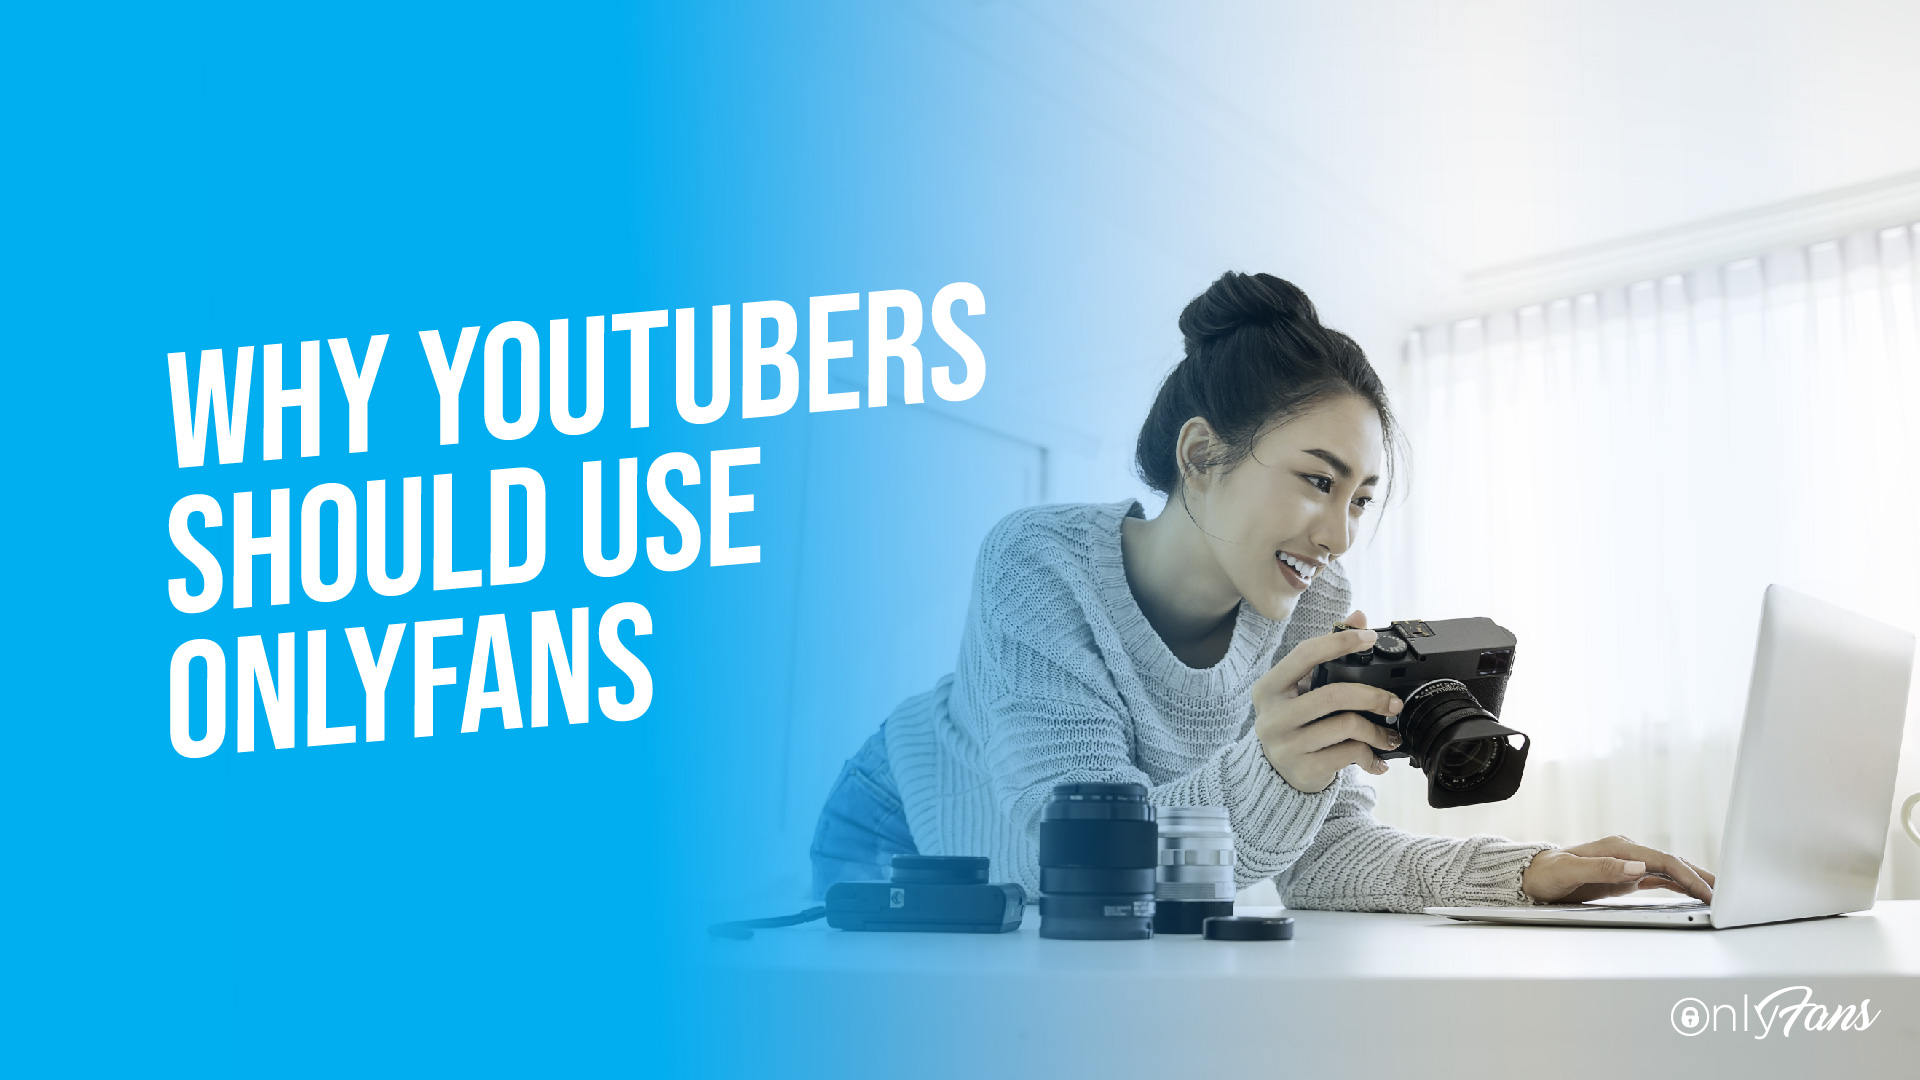 Why YouTubers should use OnlyFans